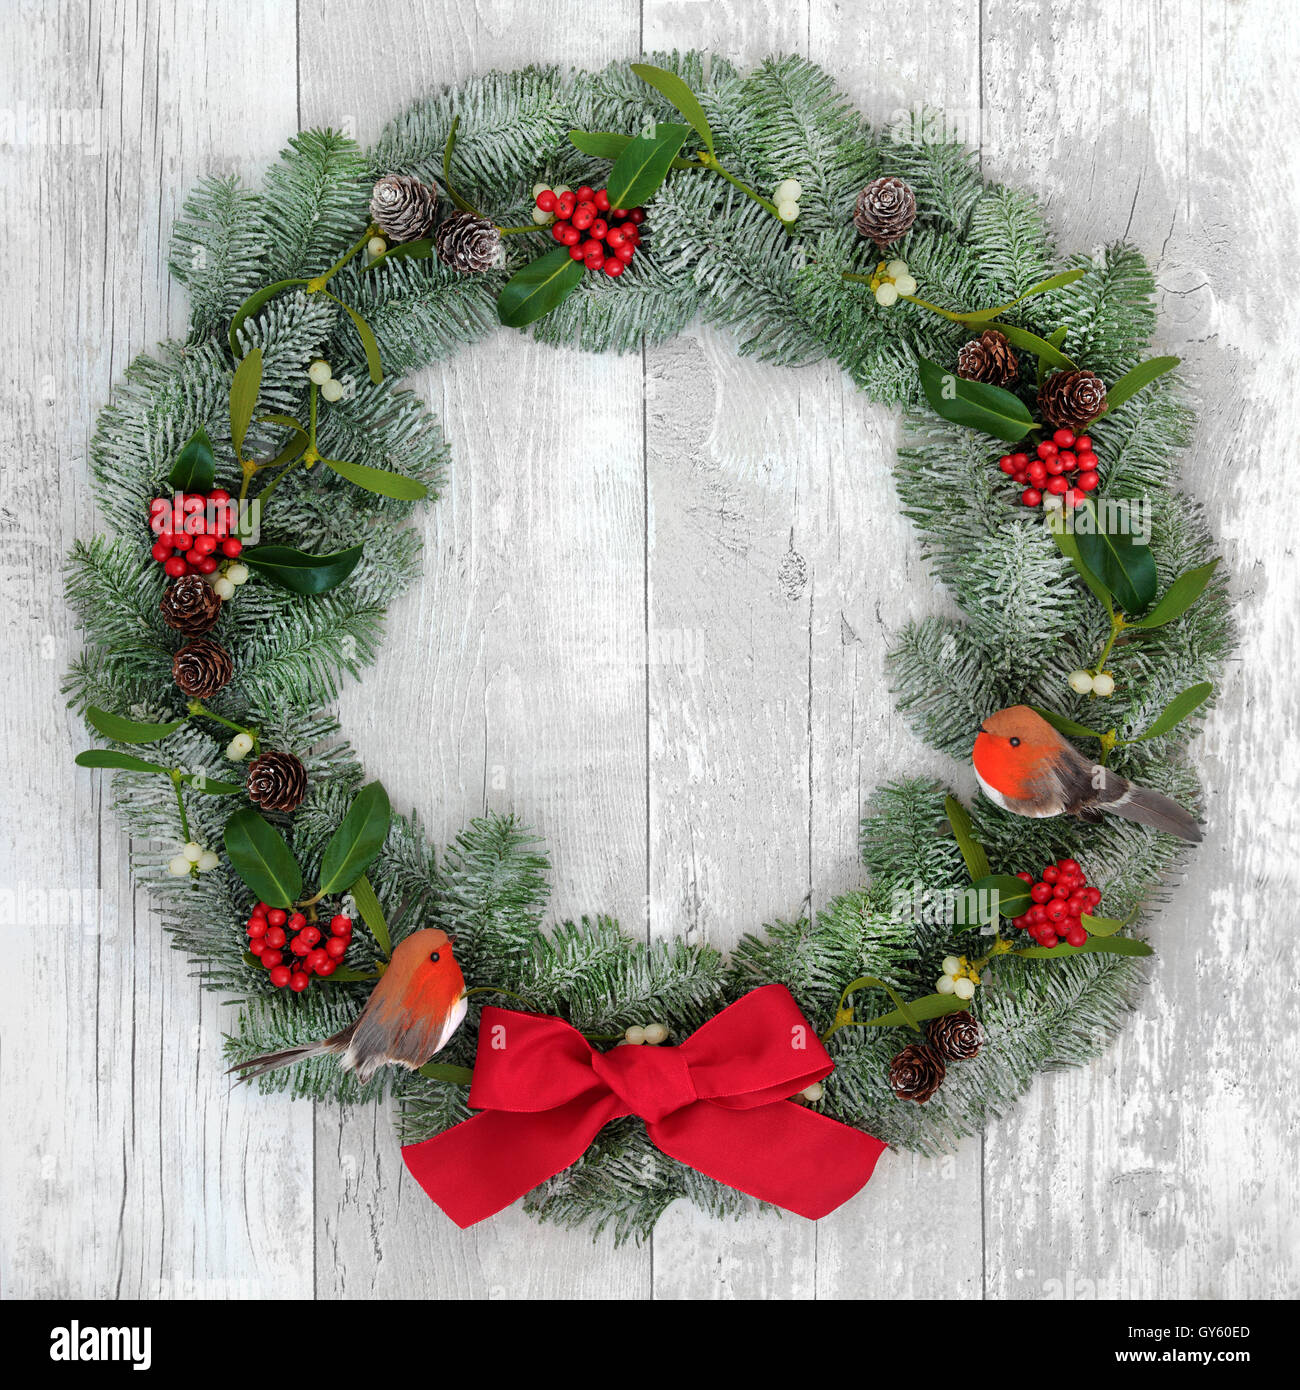 christmas wreath with robin decorations red bow holly mistletoe and snow covered blue spruce fir over distressed white wood